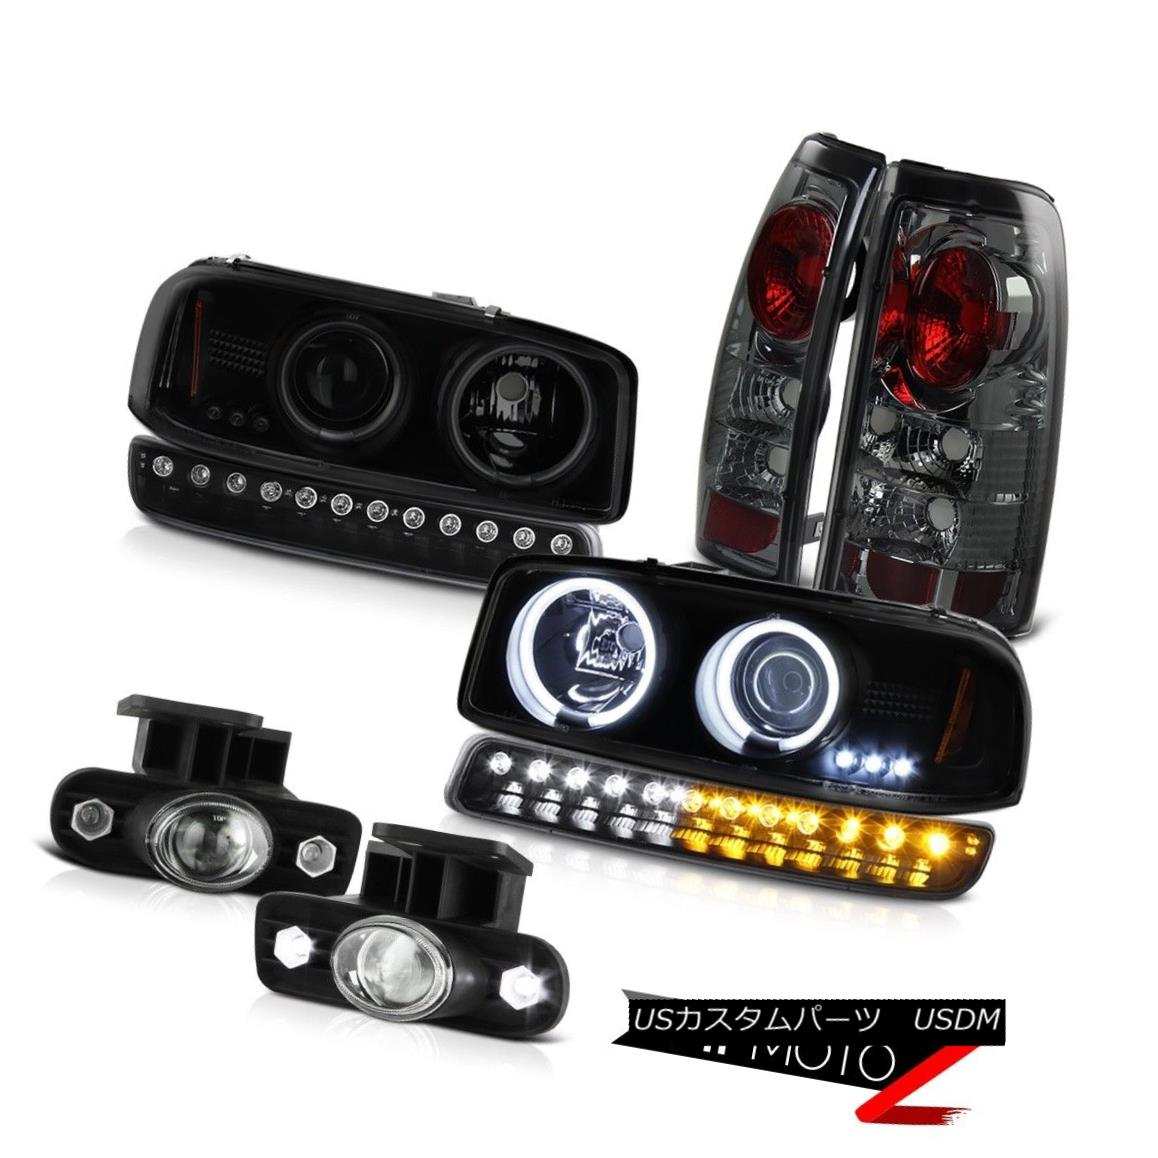 テールライト 99-02 GMC Sierra Foglights taillamps parking lamp ccfl projector headlights LED 99-02 GMC Sierra Foglightsテールランプ・パーキング・ランプccflプロジェクター・ヘッドライトLED